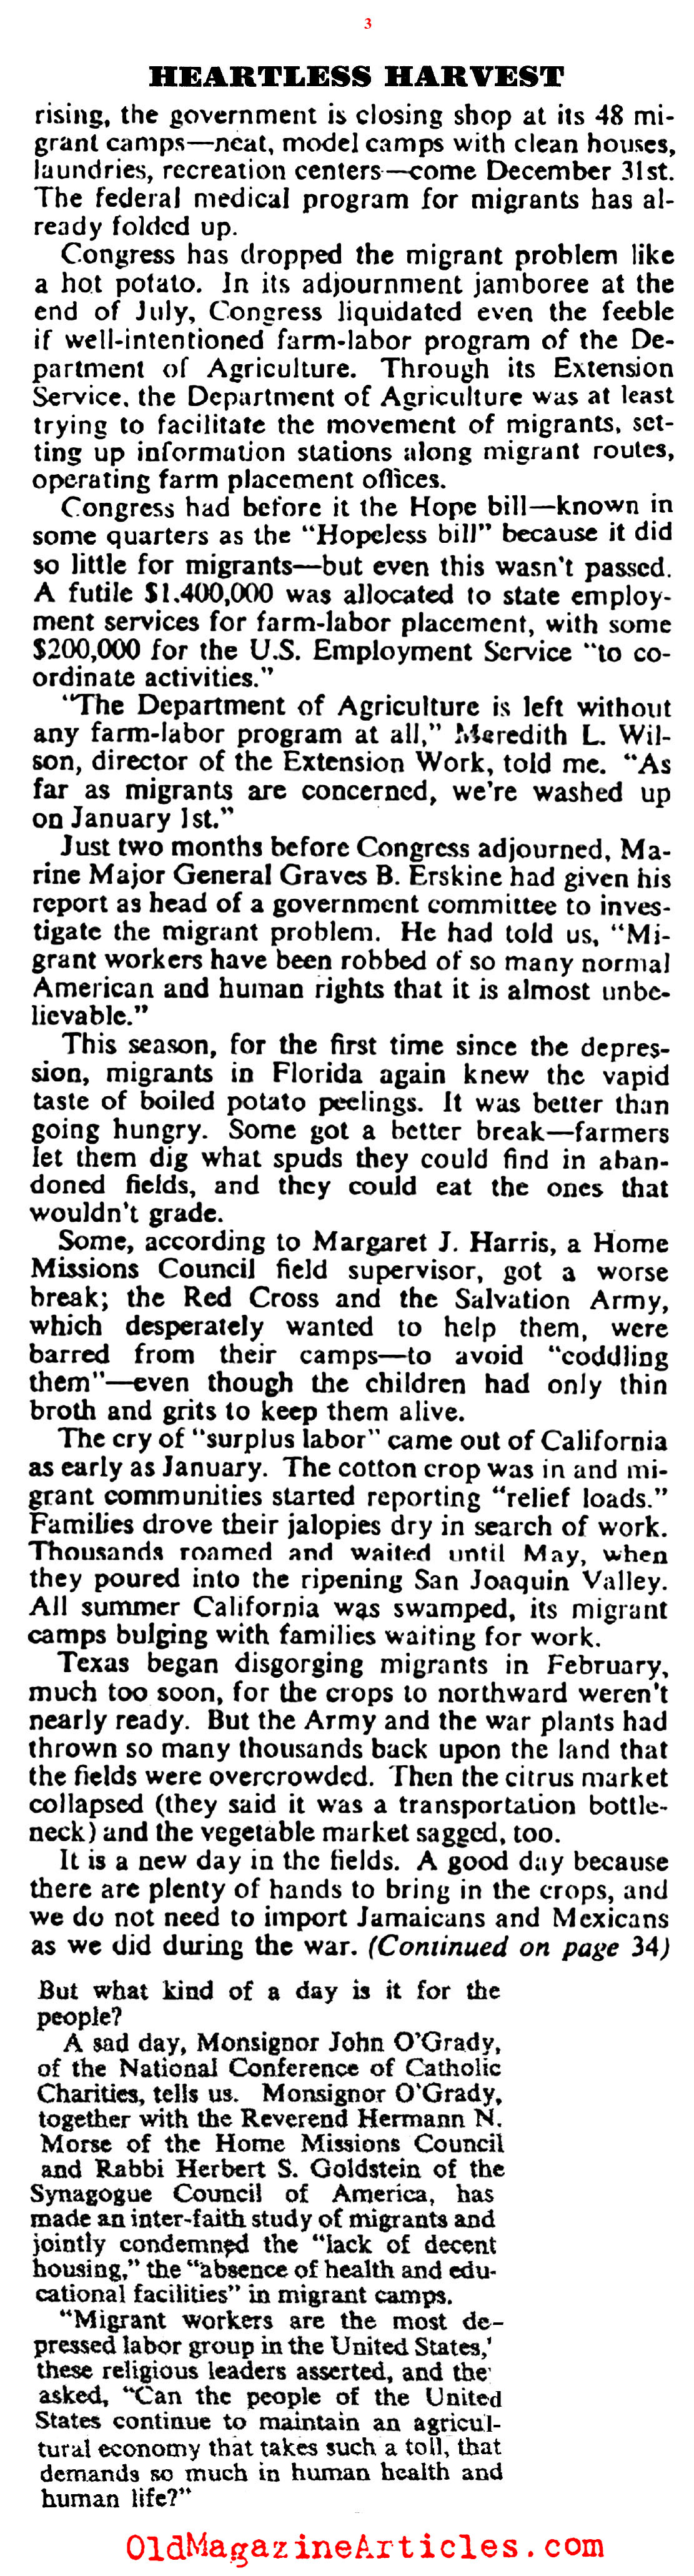 Exploited Farm Labor During World War Two (Collier's Magazine, 1947)